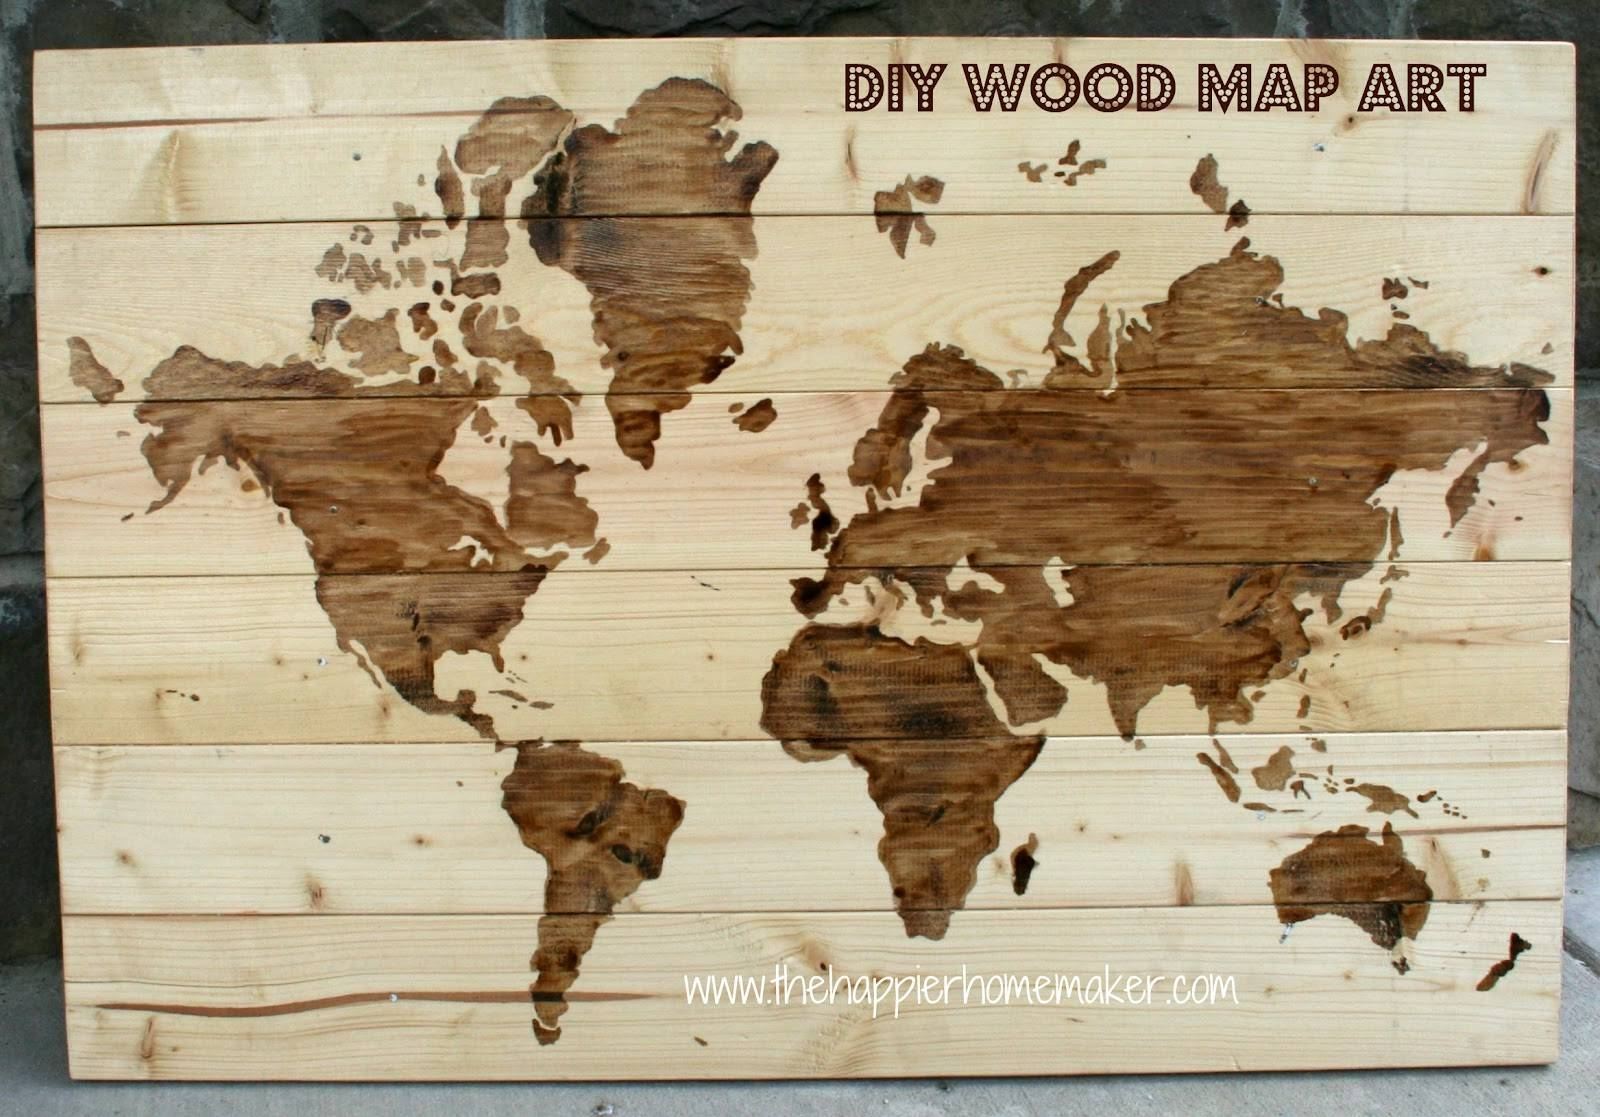 Diy Wooden World Map Art | The Happier Homemaker Regarding 2017 World Map Wood Wall Art (View 13 of 20)